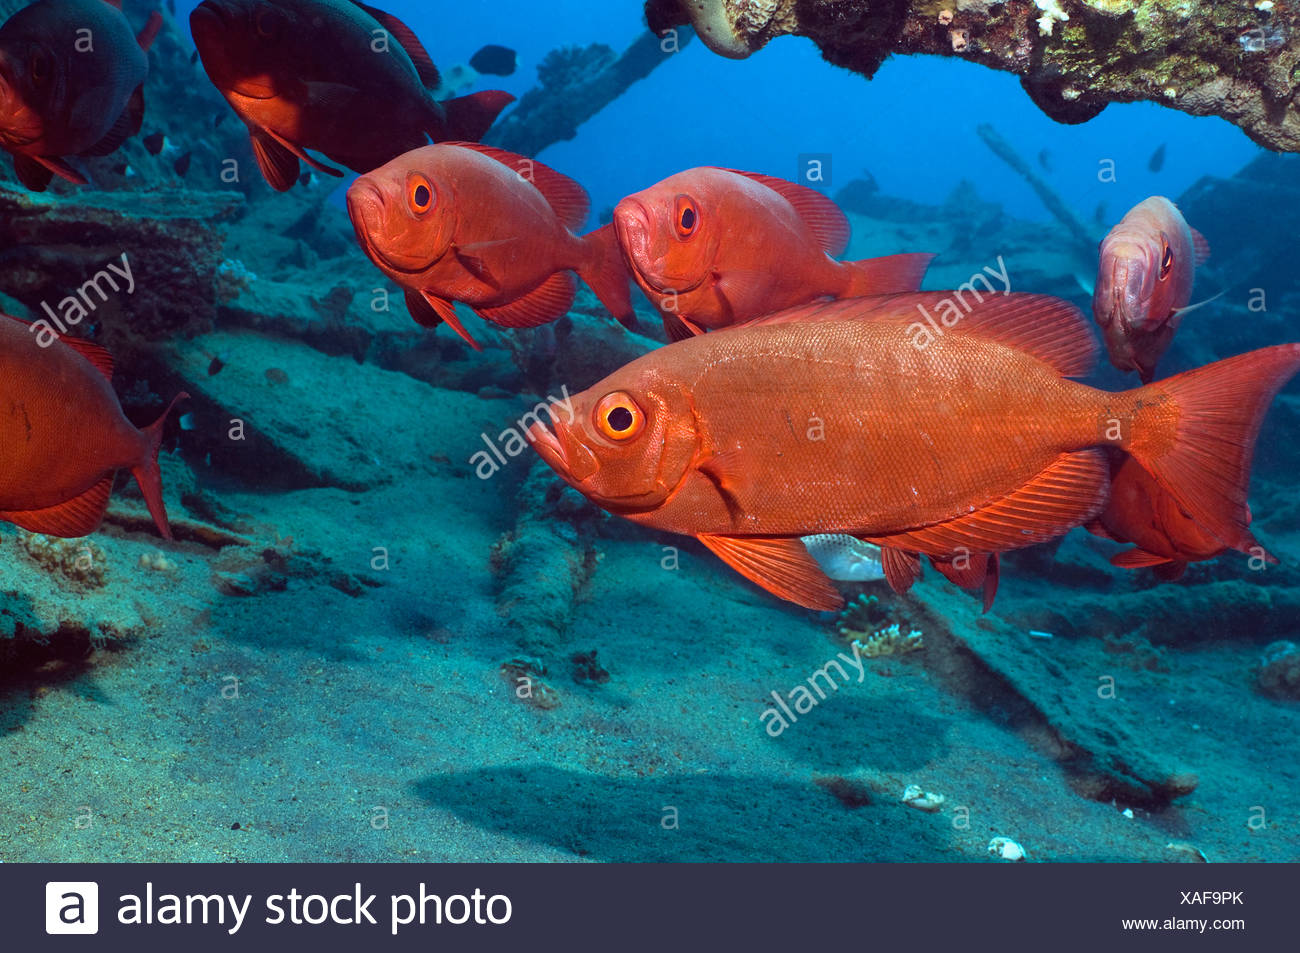 Big Eye Fish Priacanthus Hamrur Stock Photos & Big Eye Fish ...